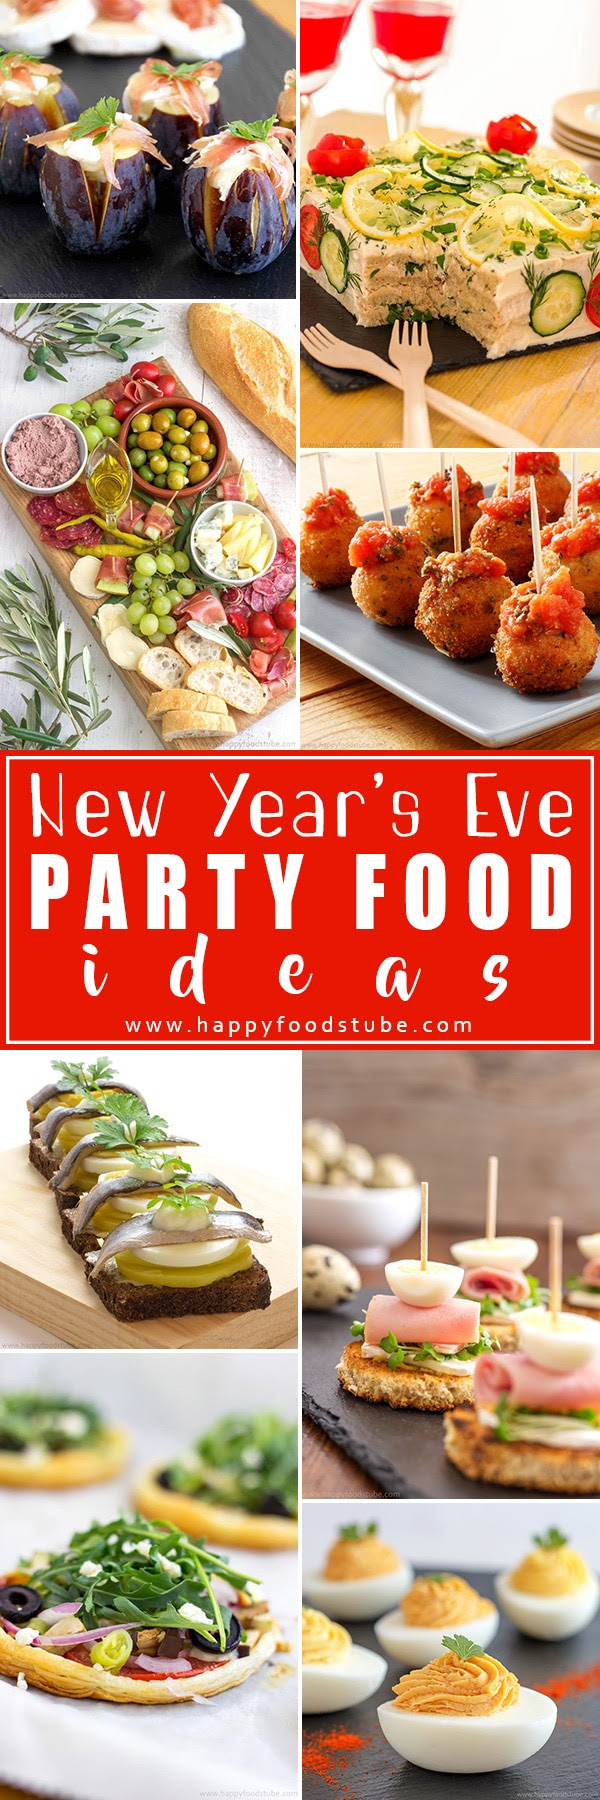 New Years Eve Party Food Ideas Happy Foods Tube